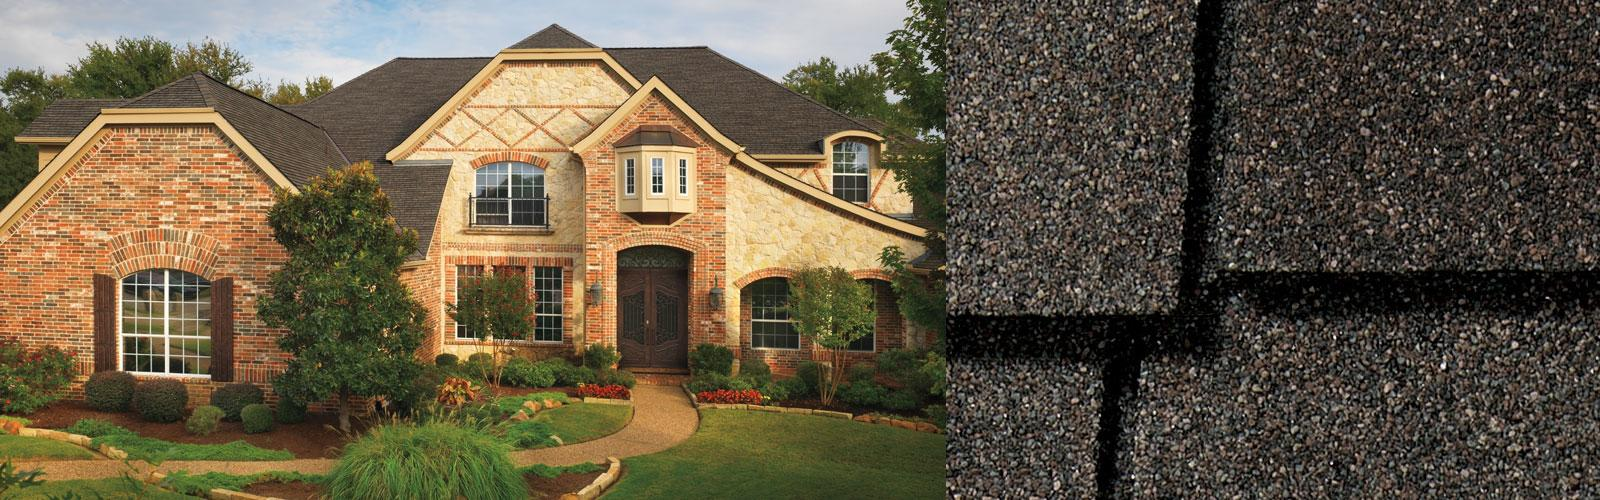 Highland Lakes Roofing Images